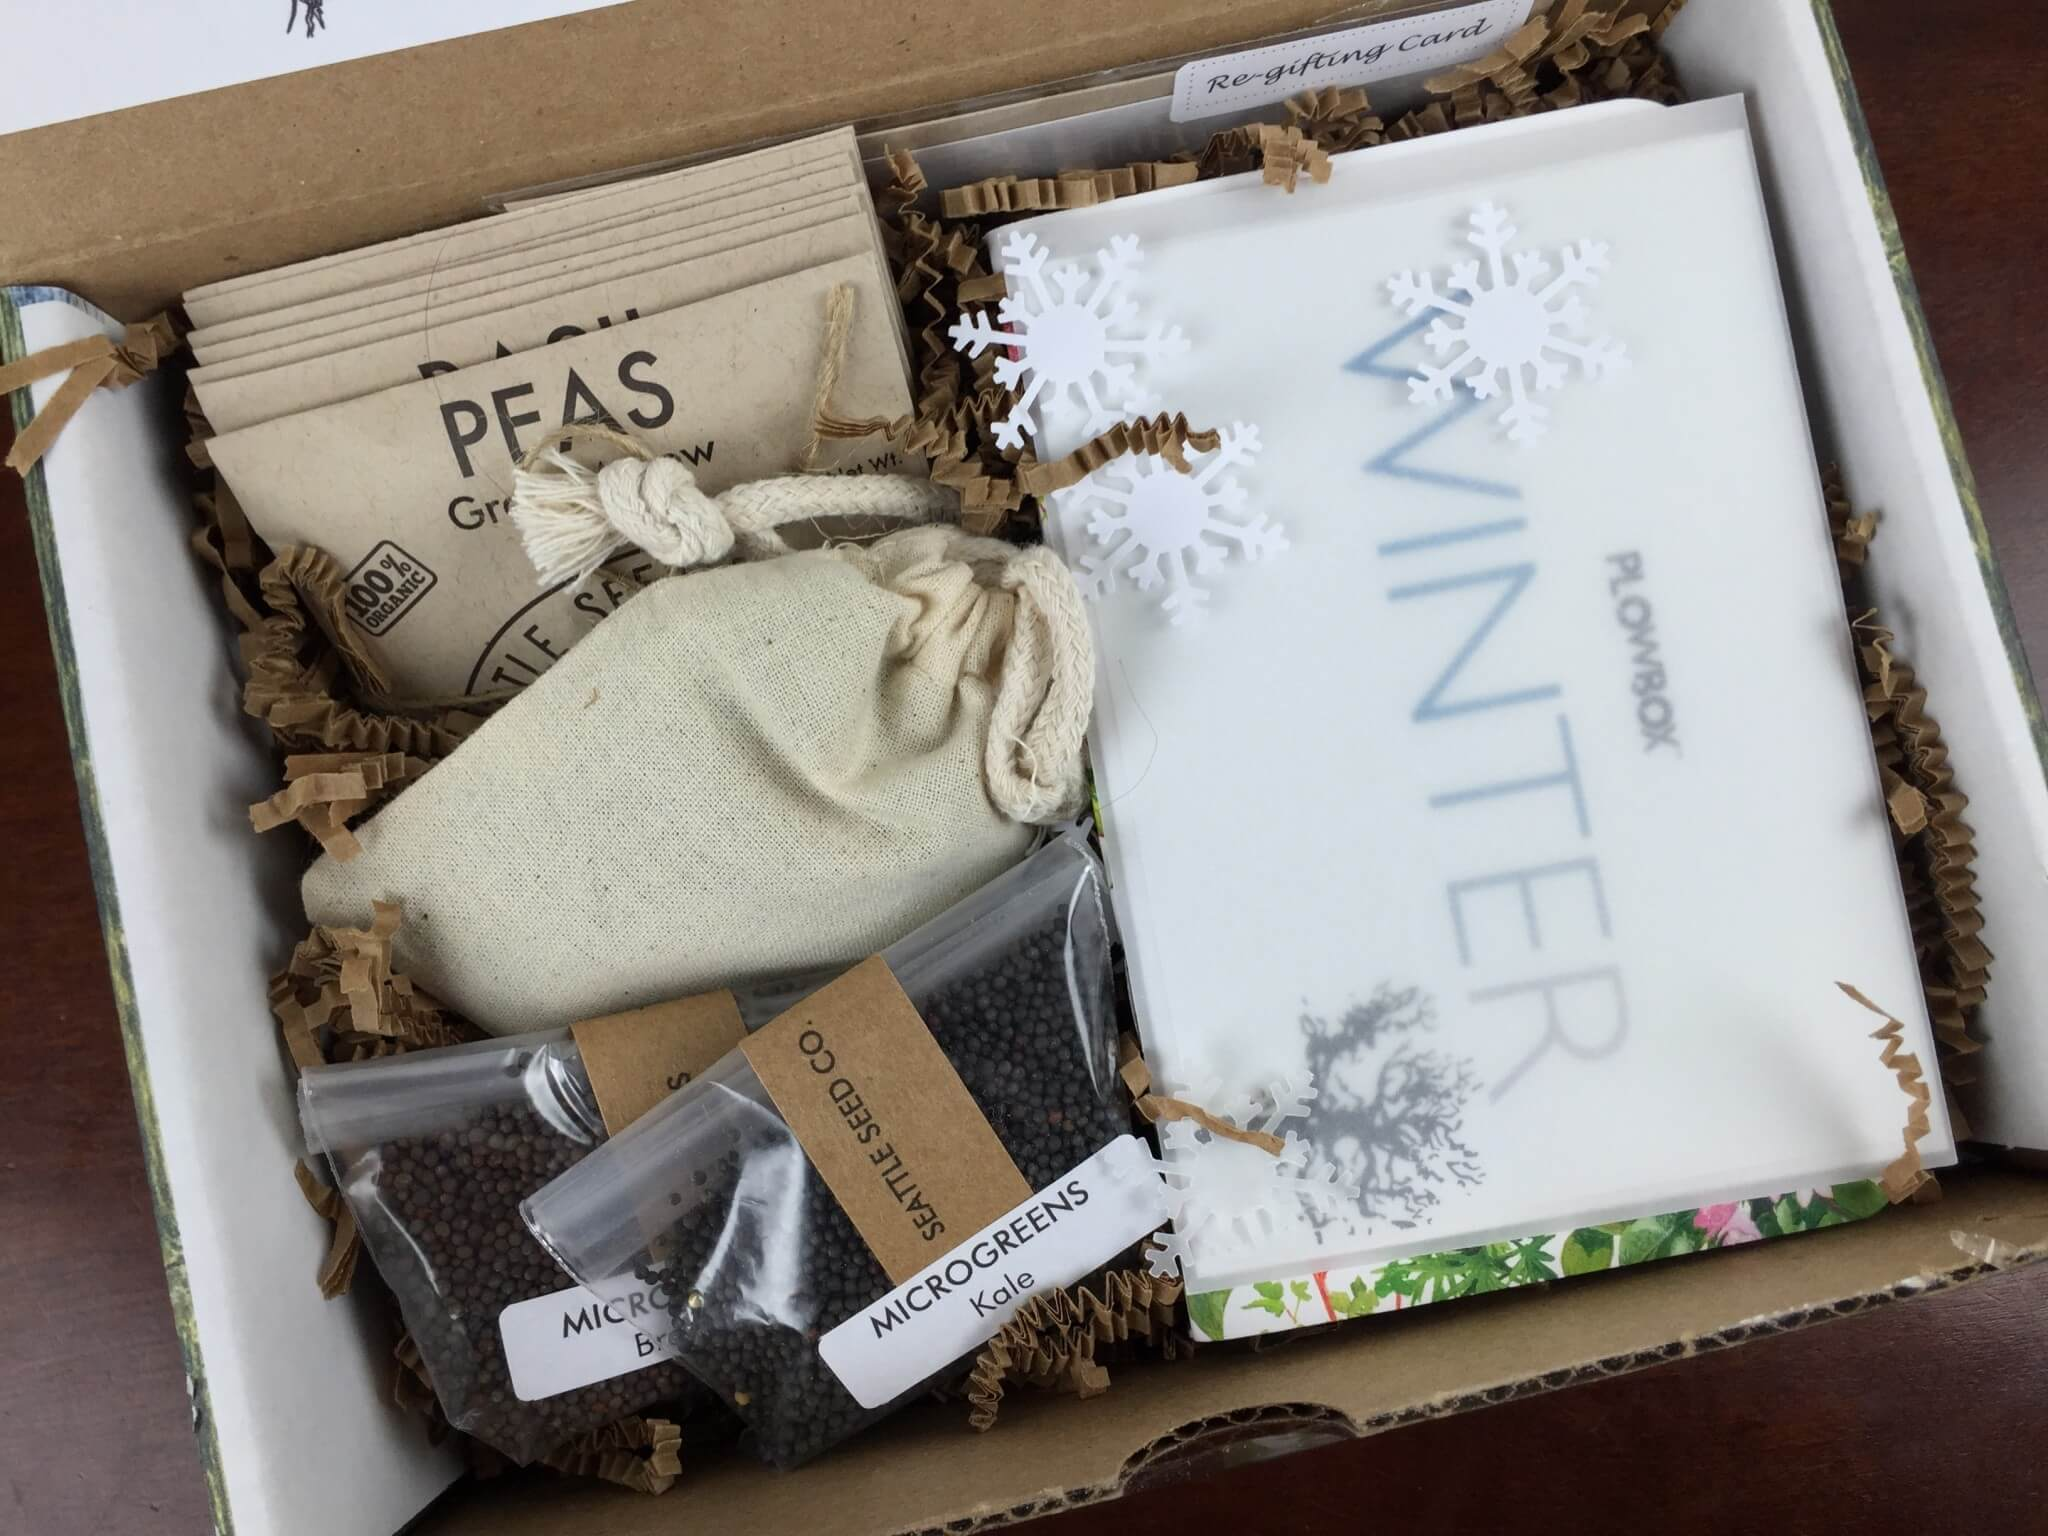 Plowbox Winter 2015 Gardening Subscription Box Review Coupon